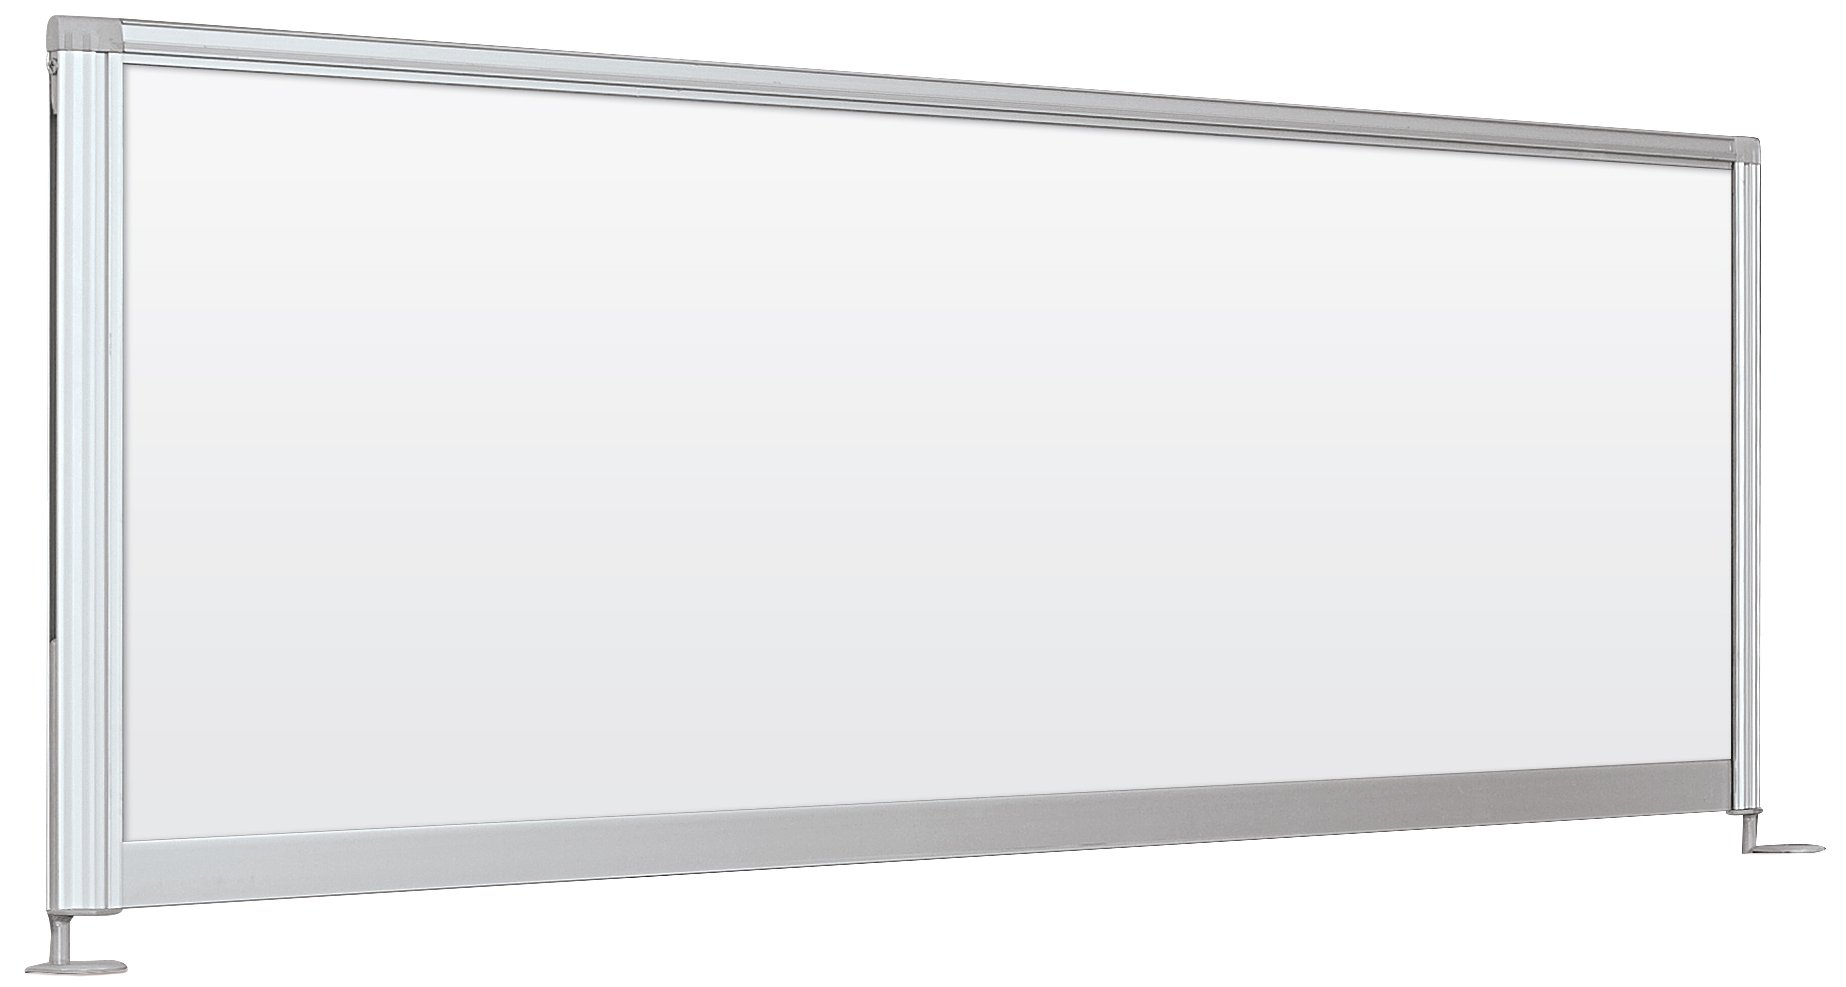 Balt 32-Inch Porcelain Desktop Privacy Panel (90137)